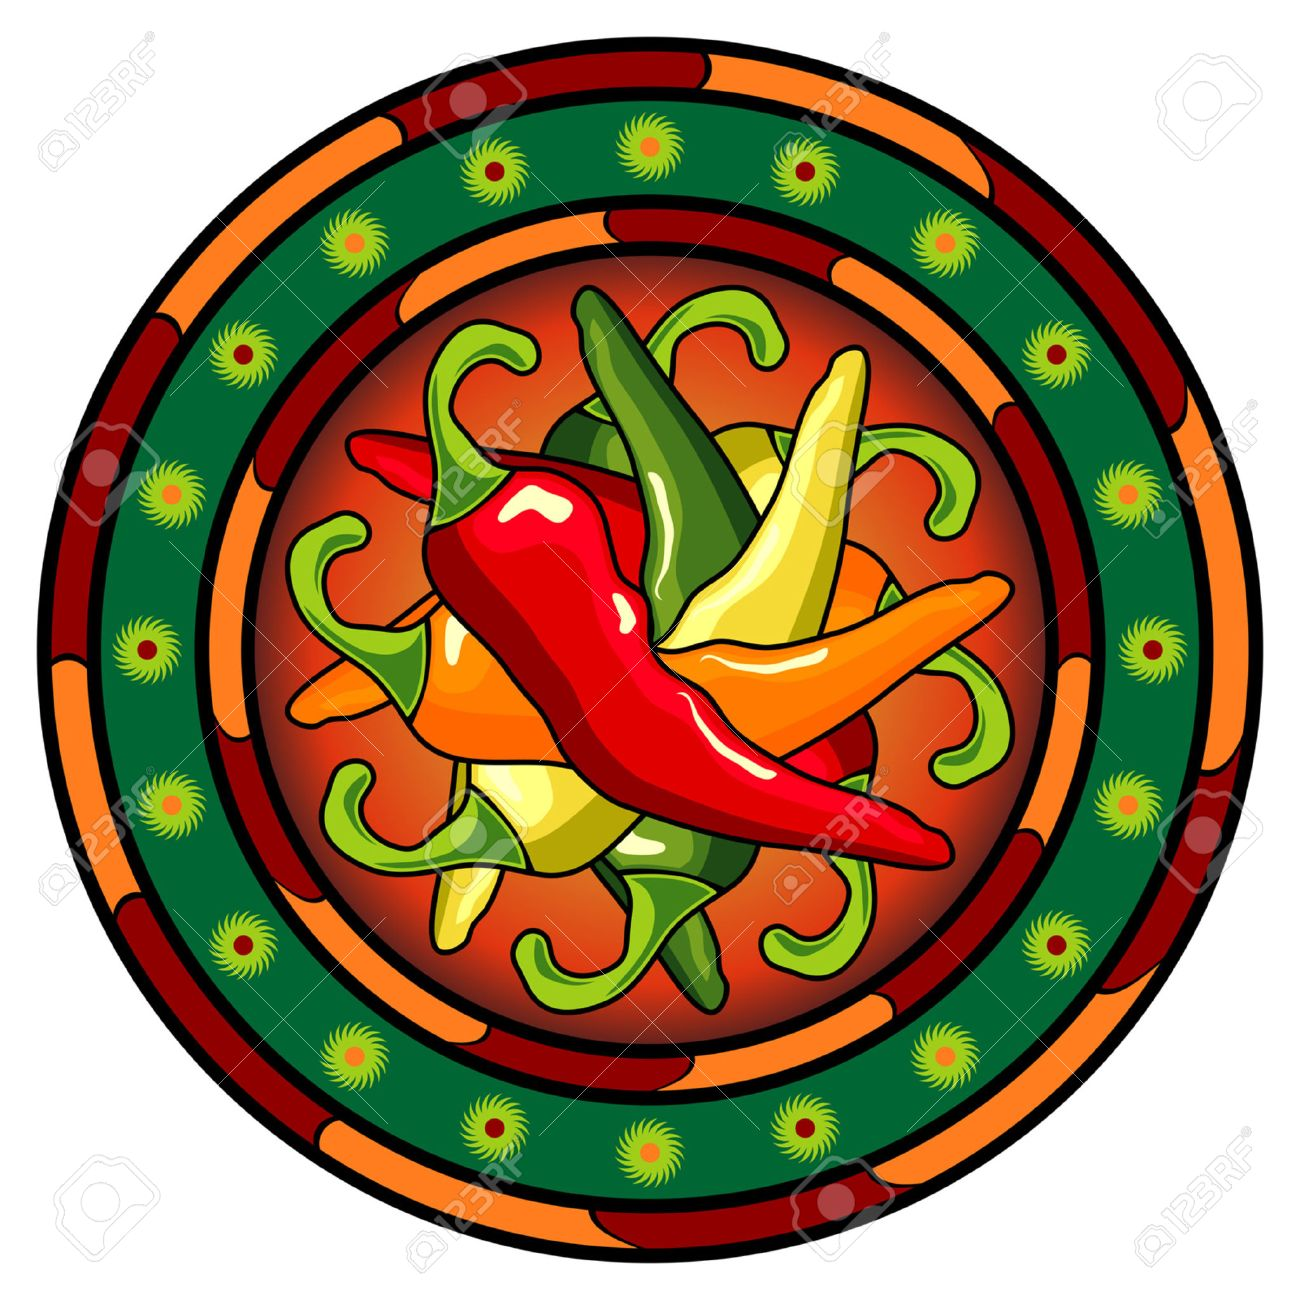 Mexican hot chili peppers logo over white background Stock Vector - 7423106